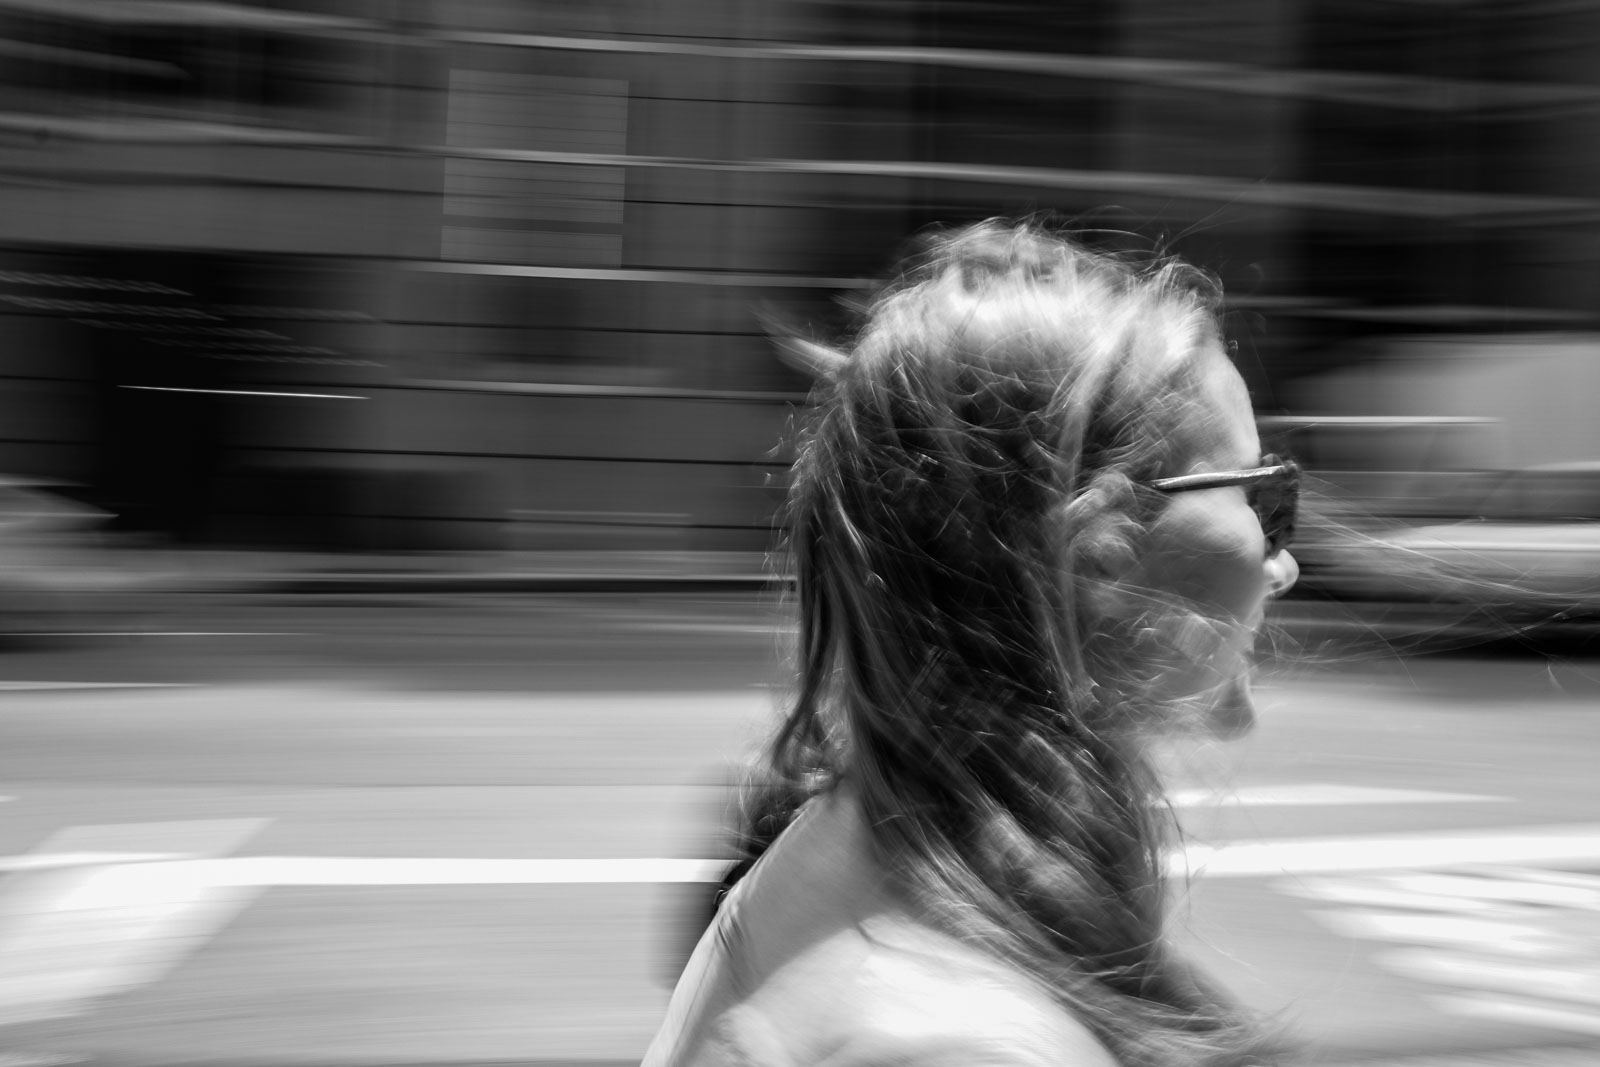 Panning-by-Kathy-Linford-1.jpg